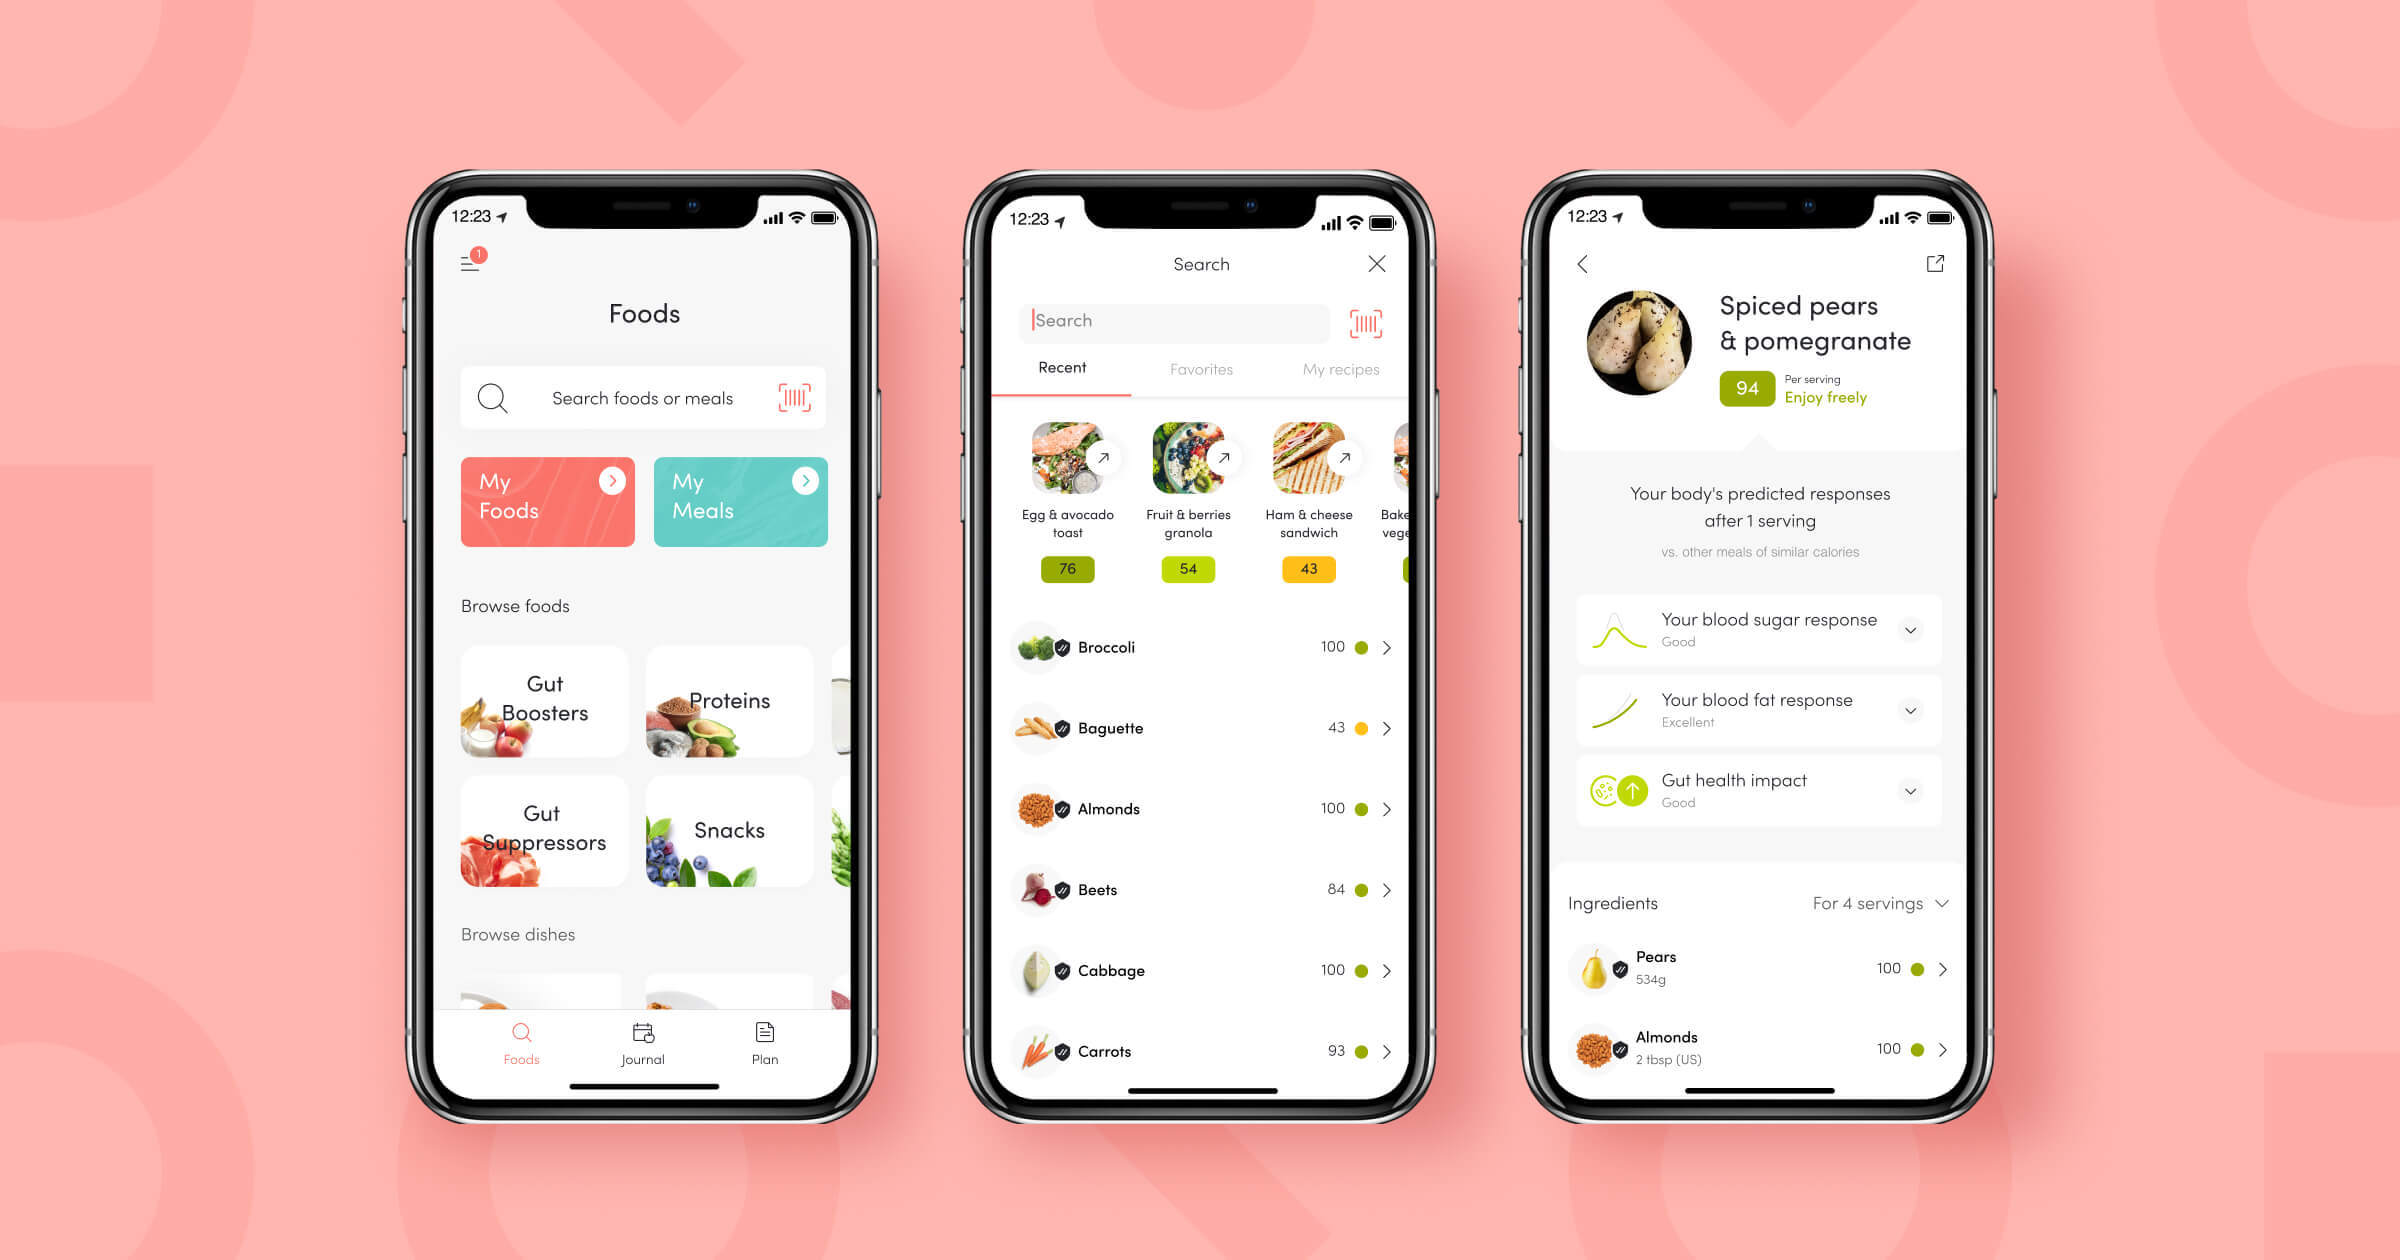 Healthcare science company ZOE announced today it has raised $53M in total funding to transform how individuals eat with a first-of-its-kind at-home test kit and personalized advice program.